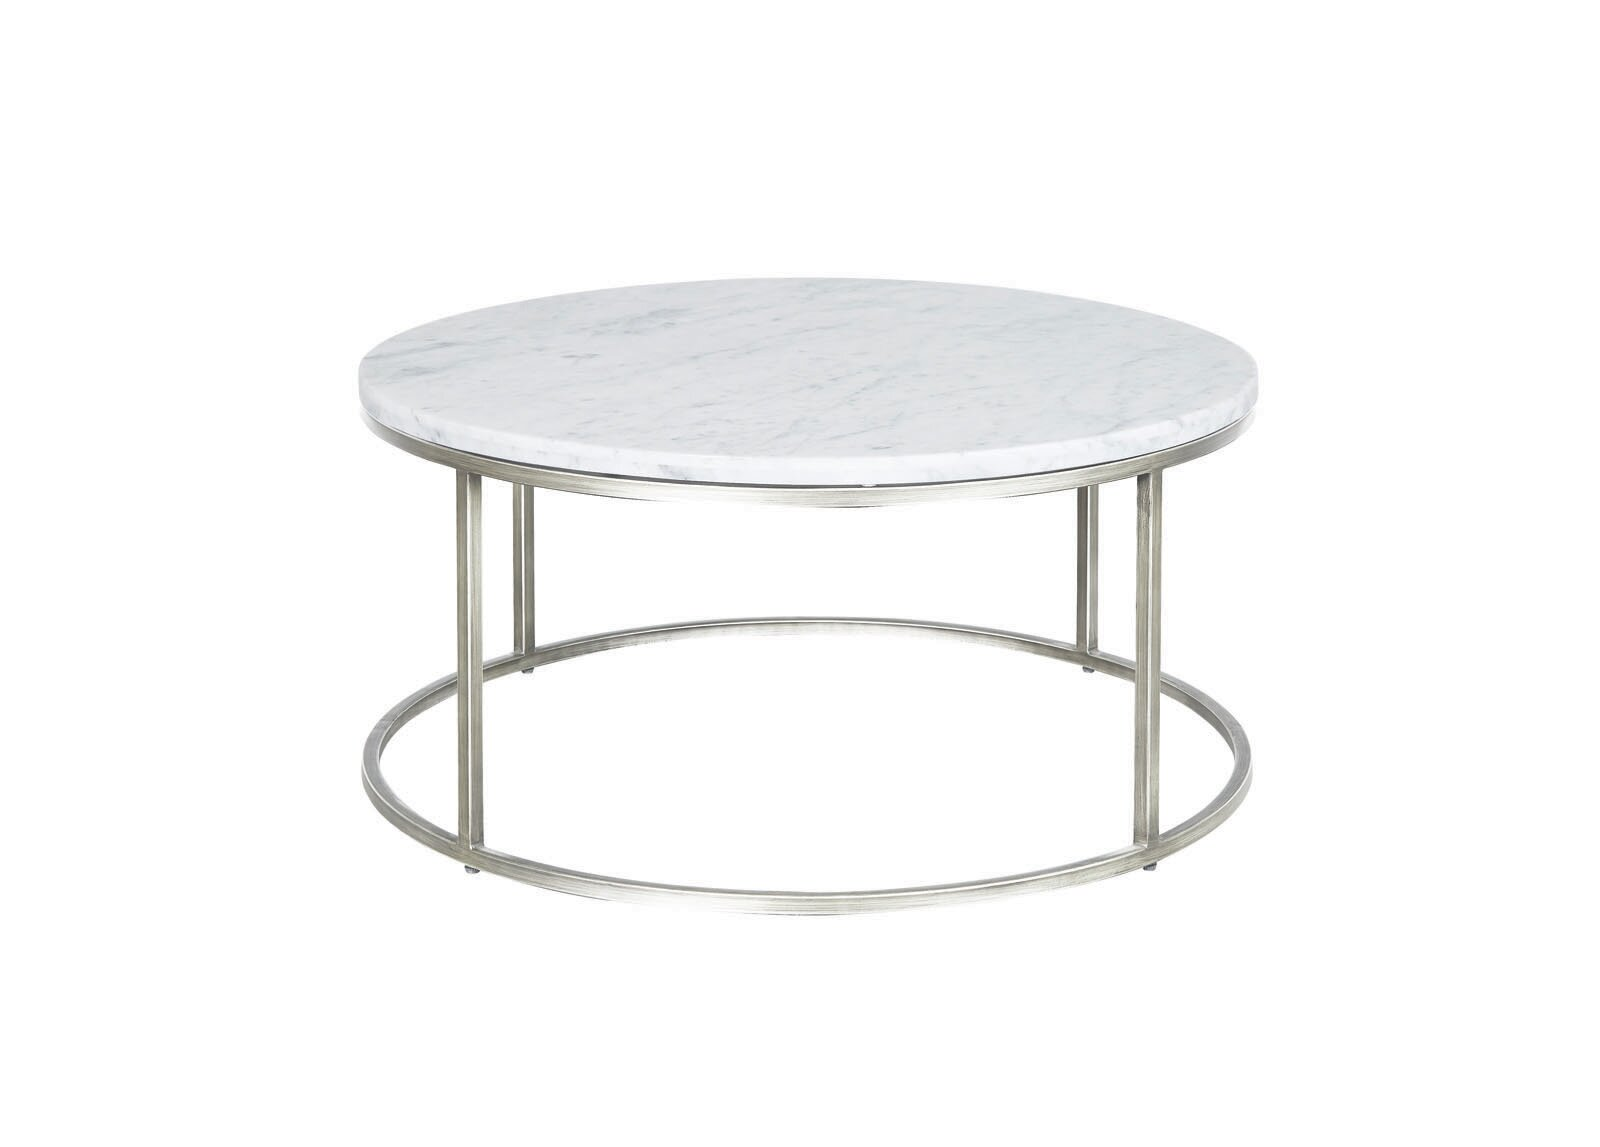 Incredible Louisa Round Coffee Table Andrewgaddart Wooden Chair Designs For Living Room Andrewgaddartcom